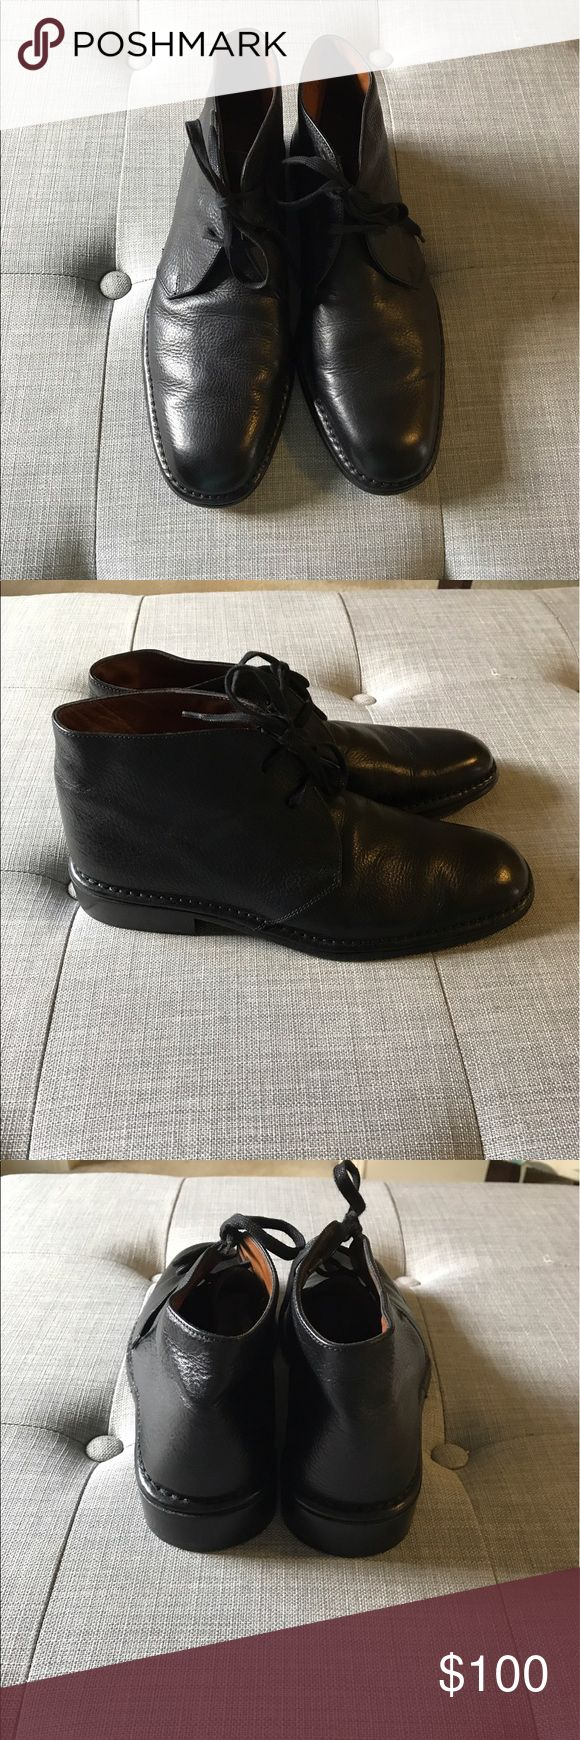 GUC John Varvatos Chukka Boots Only sign of wear in these is on the bottom - size 8.5. Beautiful shoes - leather, made in Italy. John Varvatos Shoes